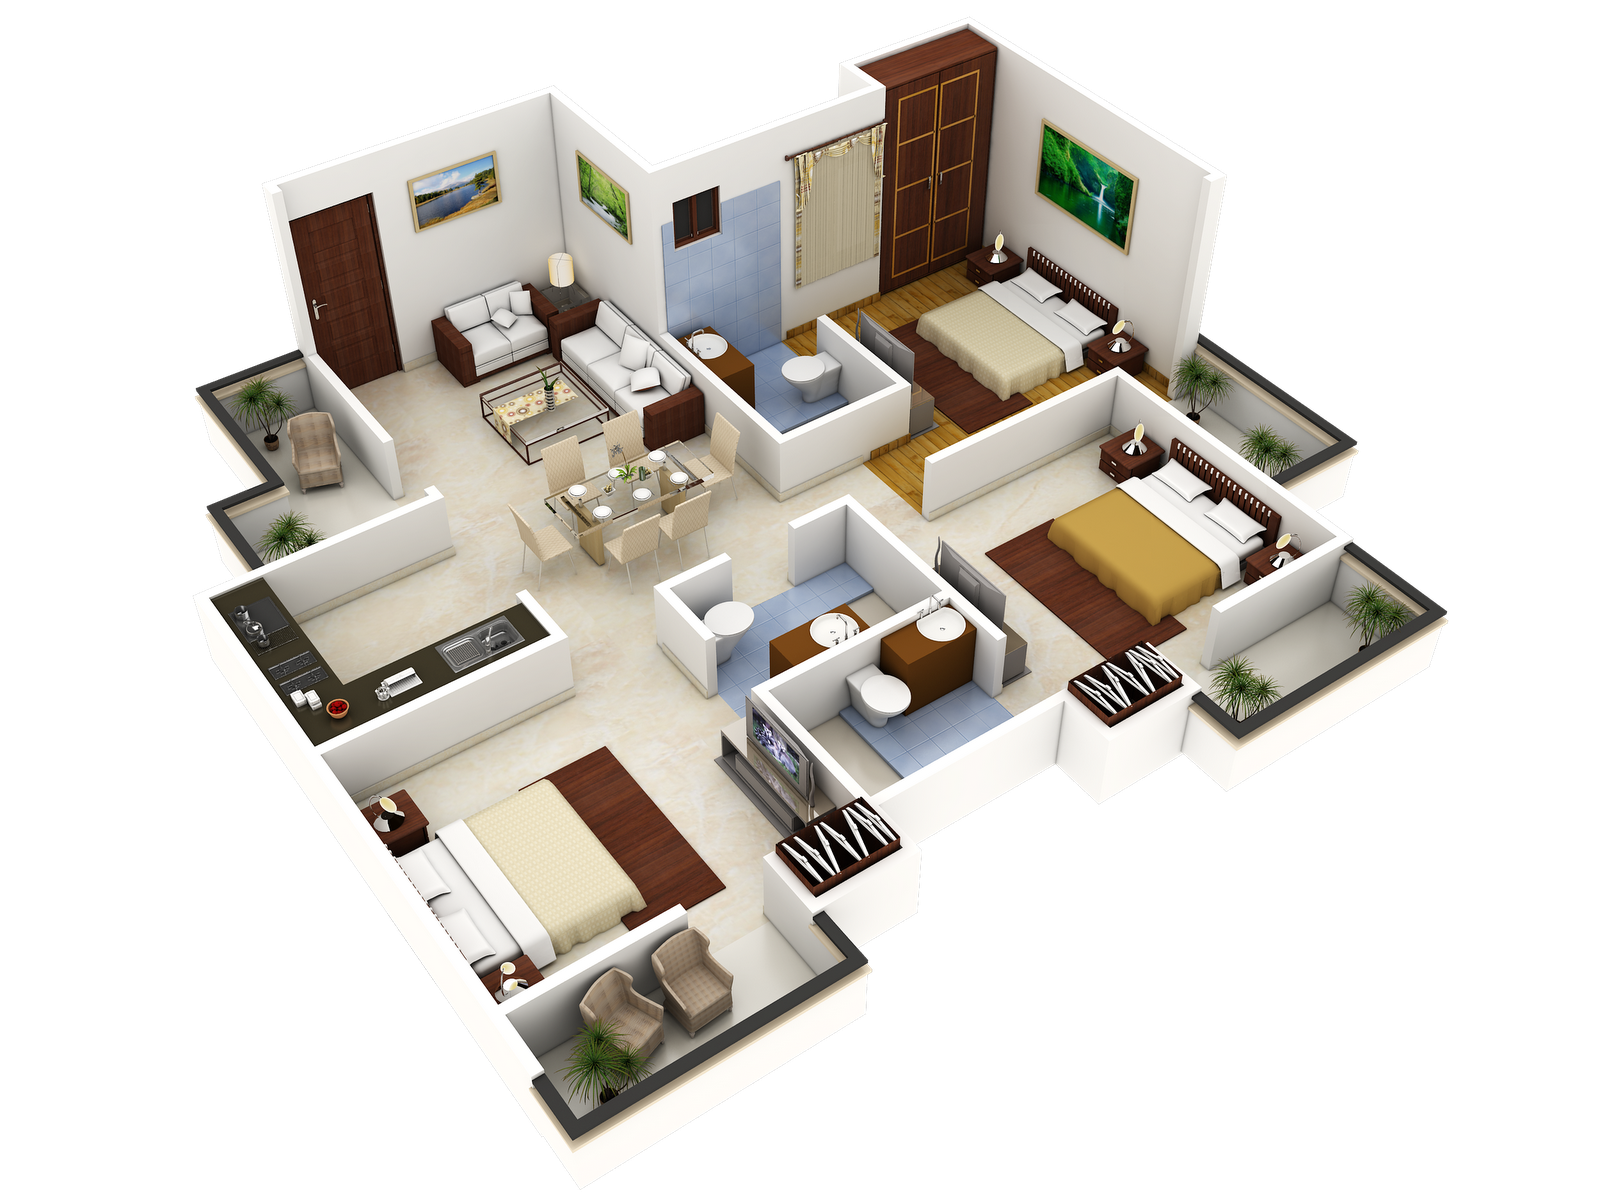 3 bedroom house designs 3d buscar con google grandes for Floorplans 3d